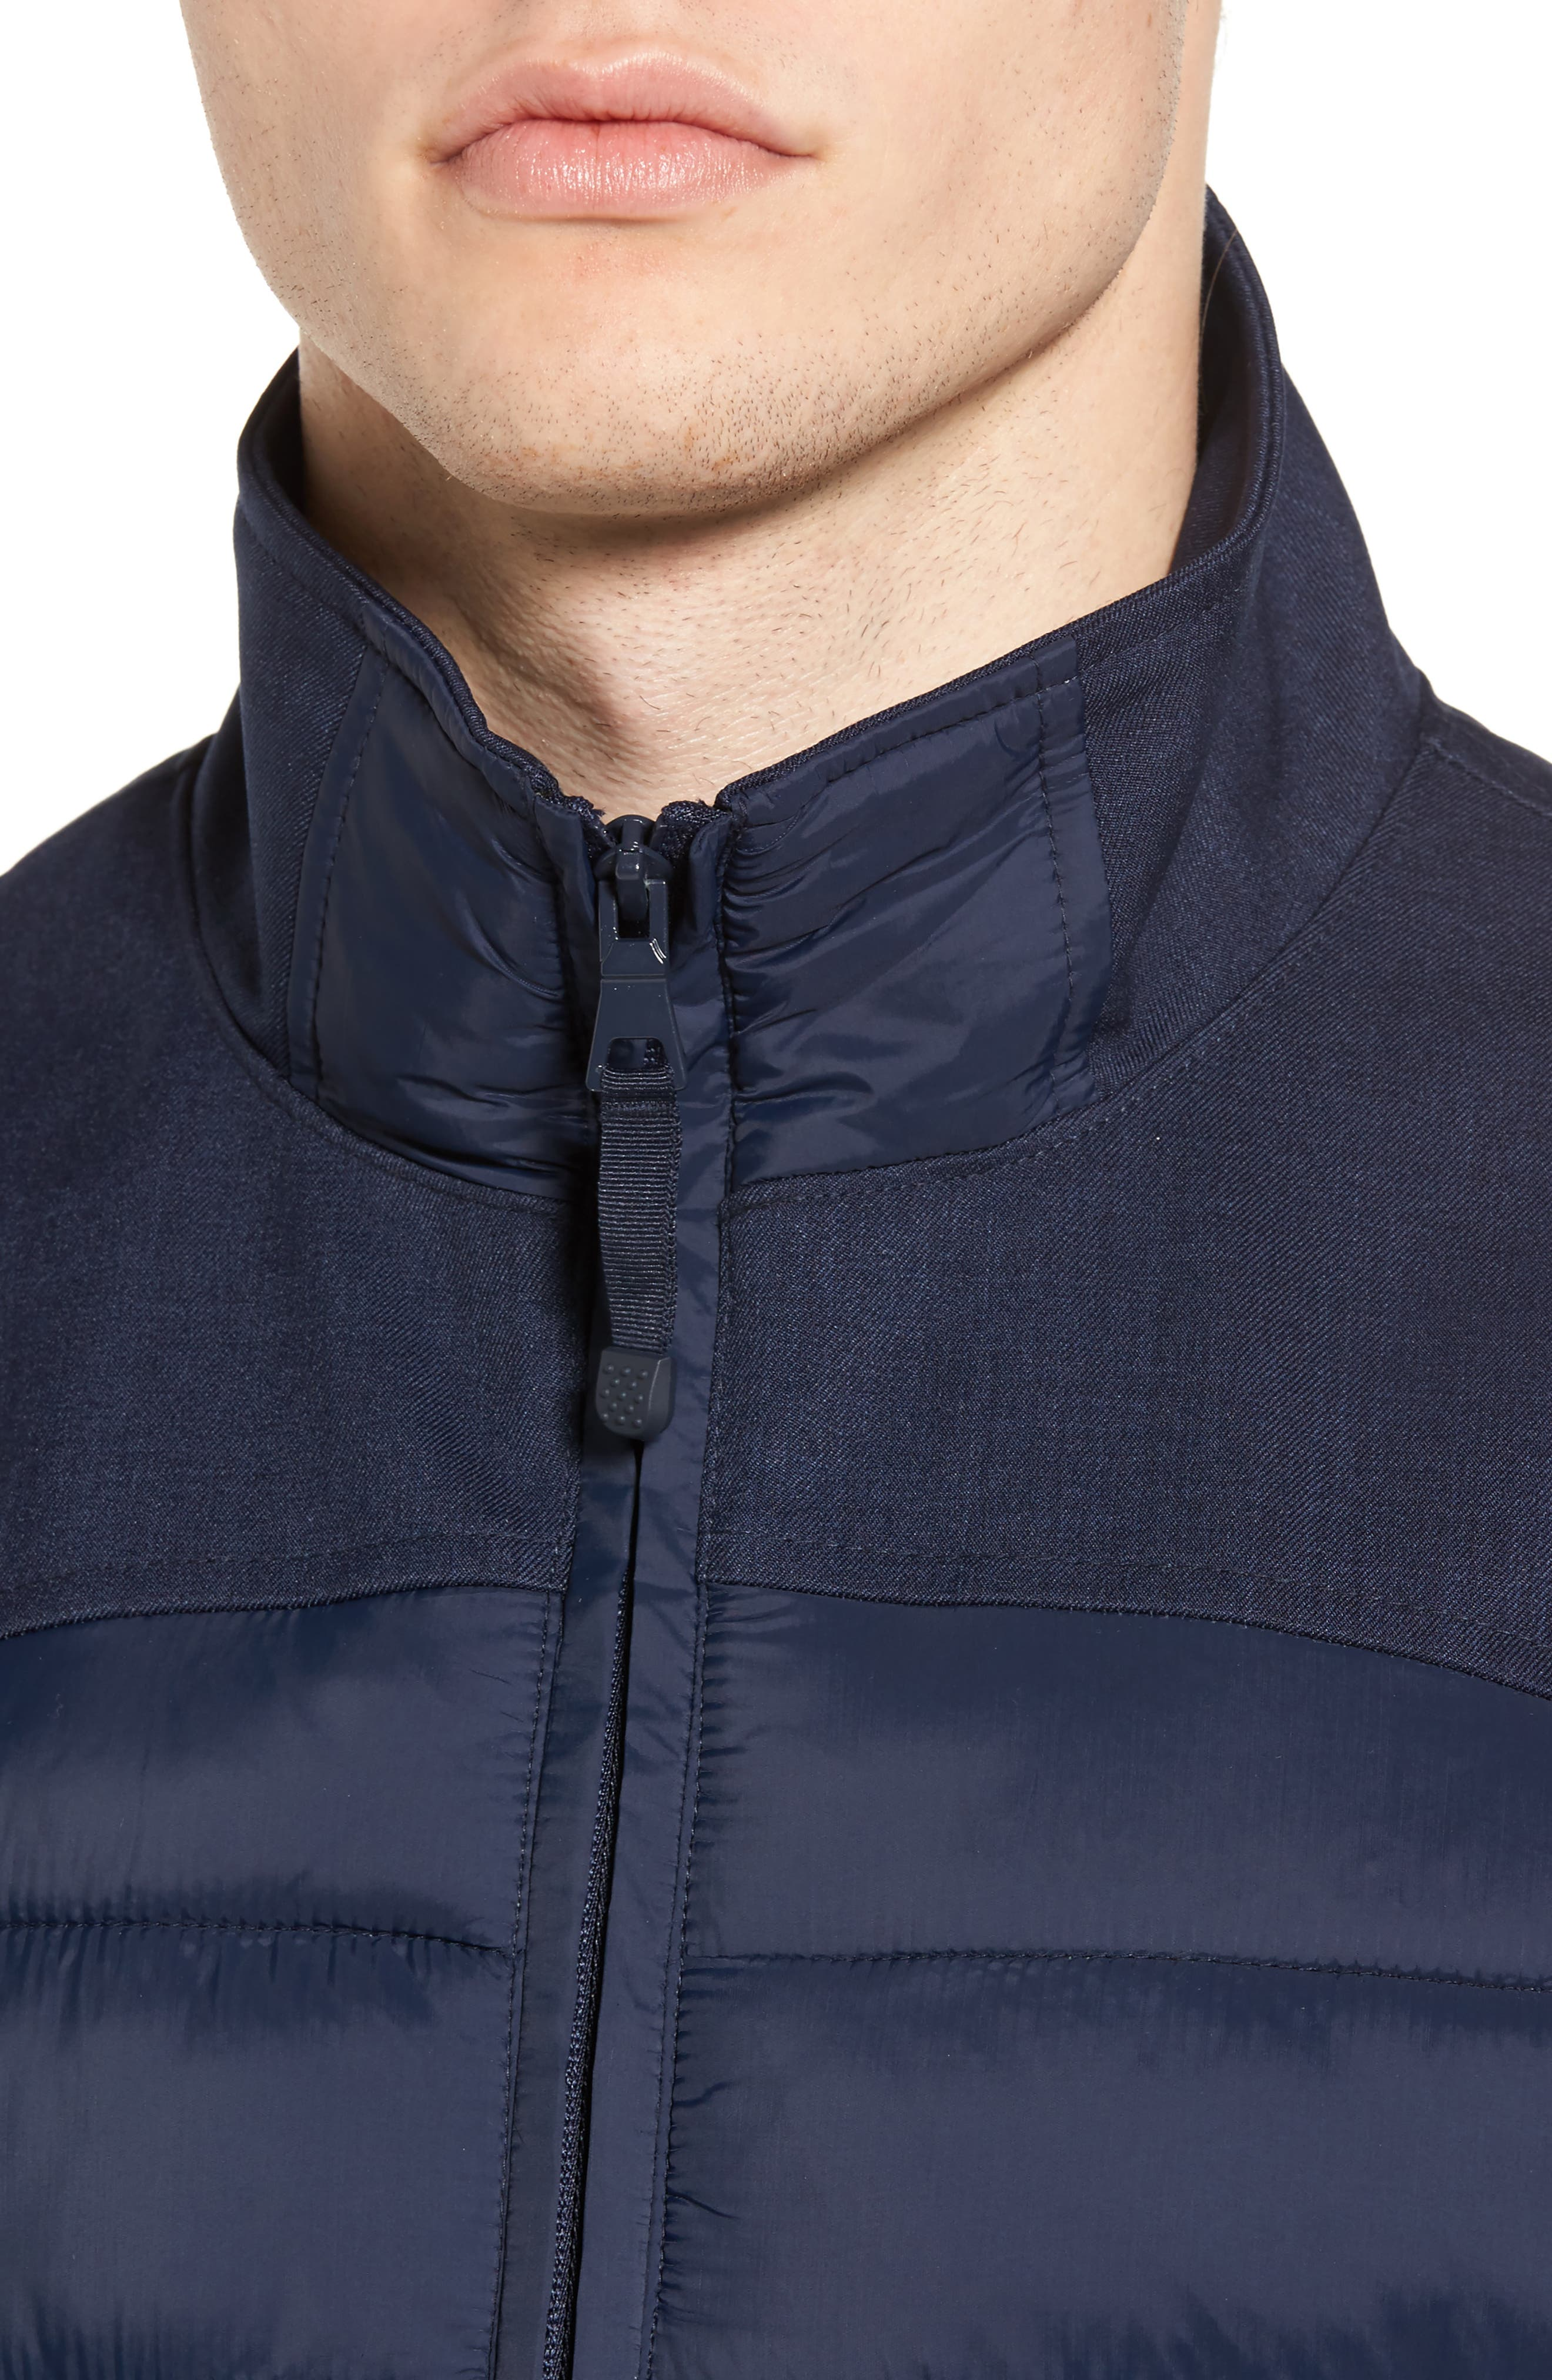 Quilted Vest,                             Alternate thumbnail 4, color,                             421